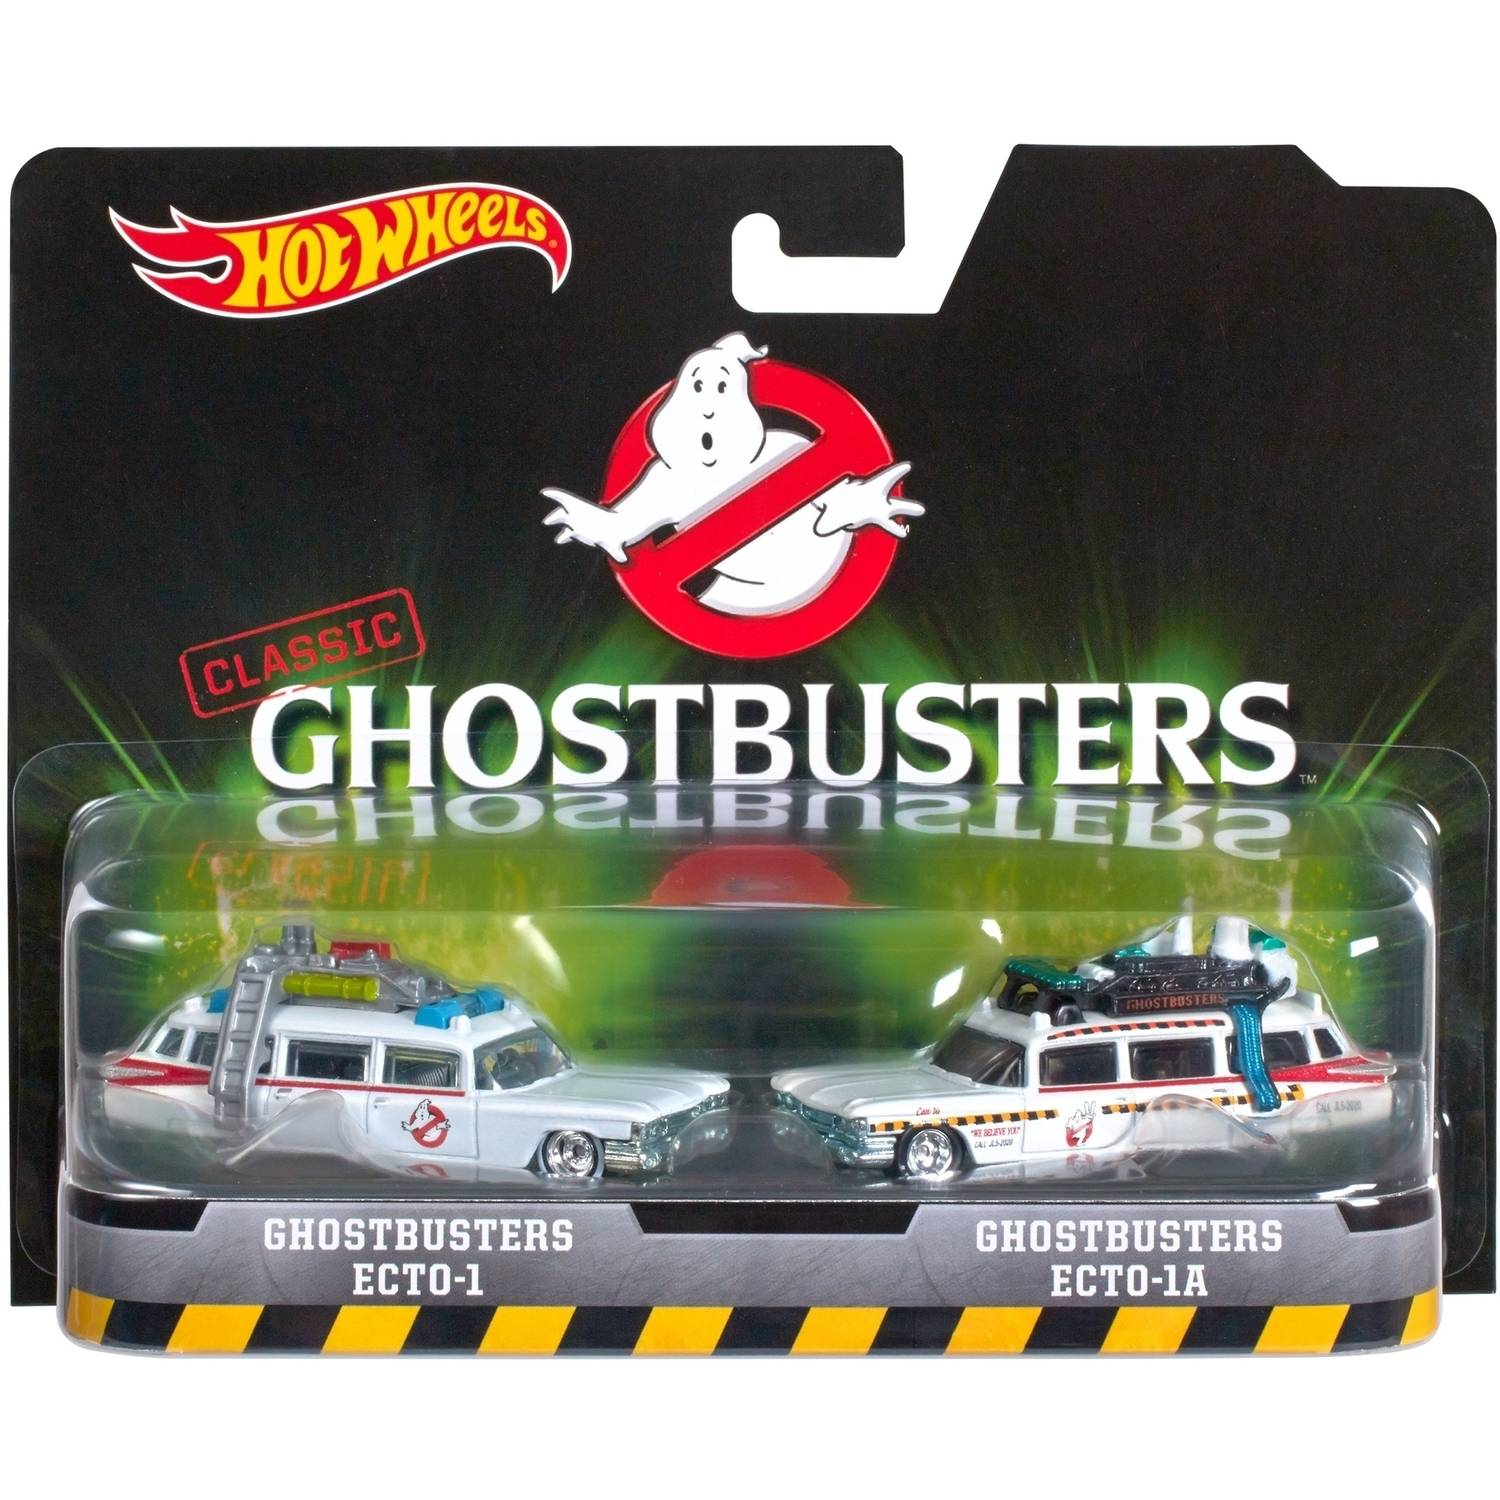 Ghostbusters Hot Wheels Vehicle, 2pk